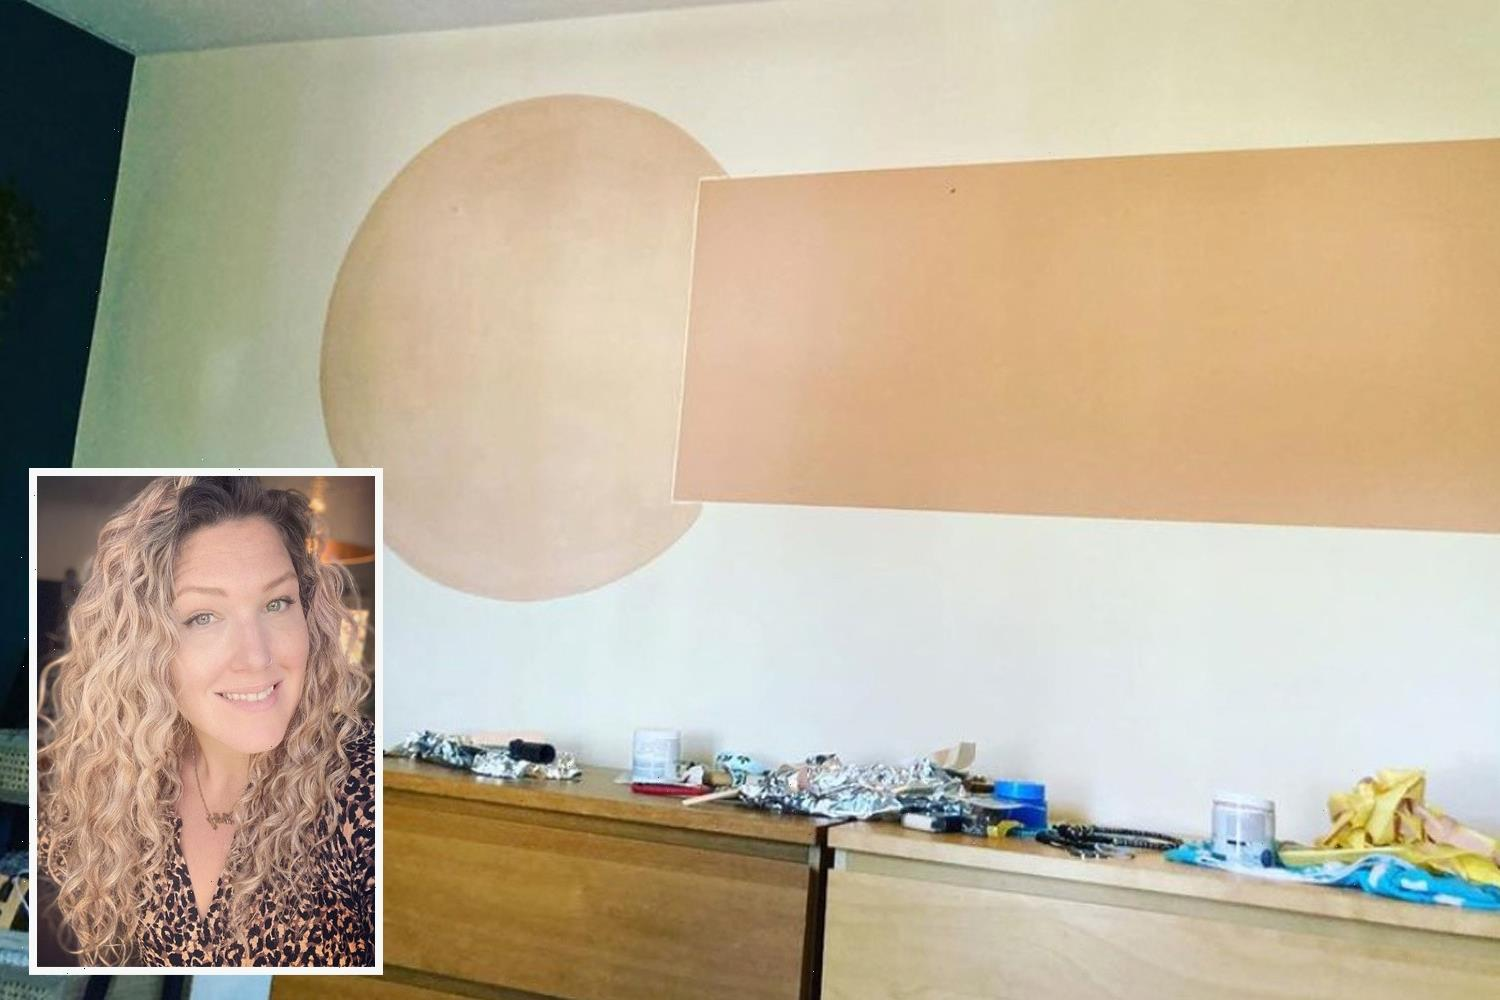 Mum spends hours painstakingly painting colour block pattern on bedroom wall – & realises it looks like giant willy